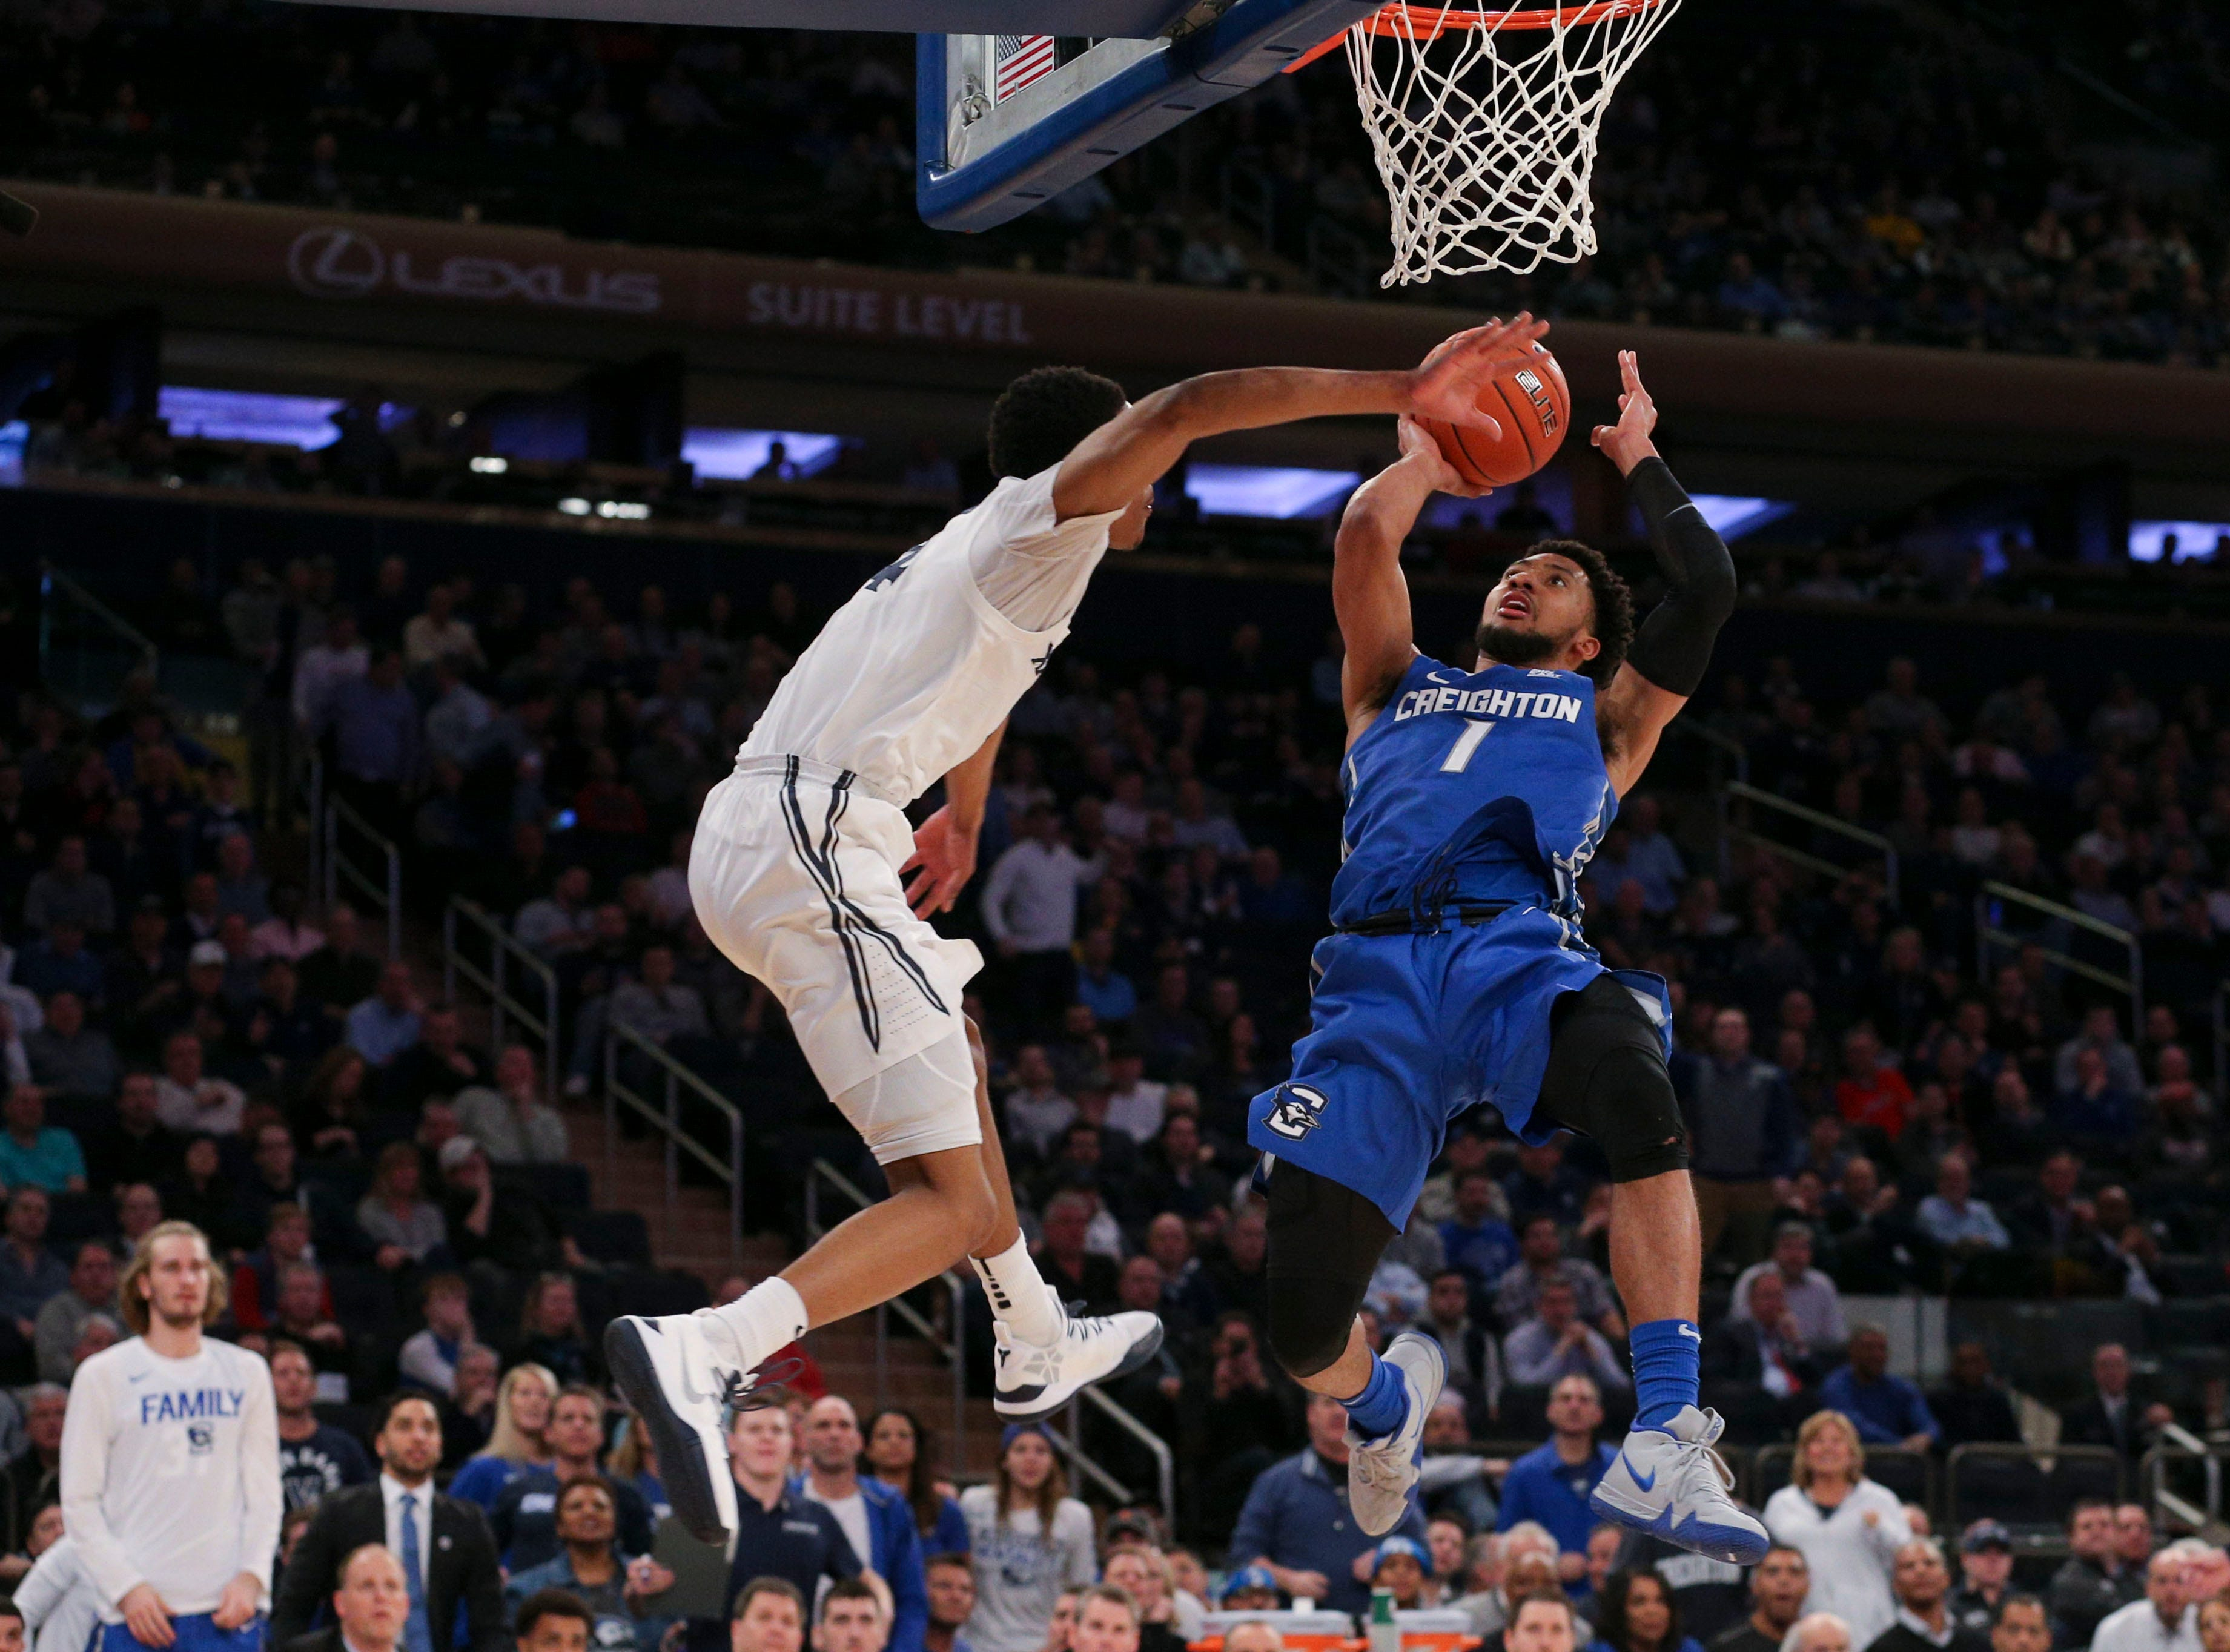 Creighton Bluejays guard Davion Mintz (1) is fouled as he drives to the basket by Xavier Musketeers guard Elias Harden (4) during the second half of a quarterfinal game of the Big East conference tournament at Madison Square Garden.